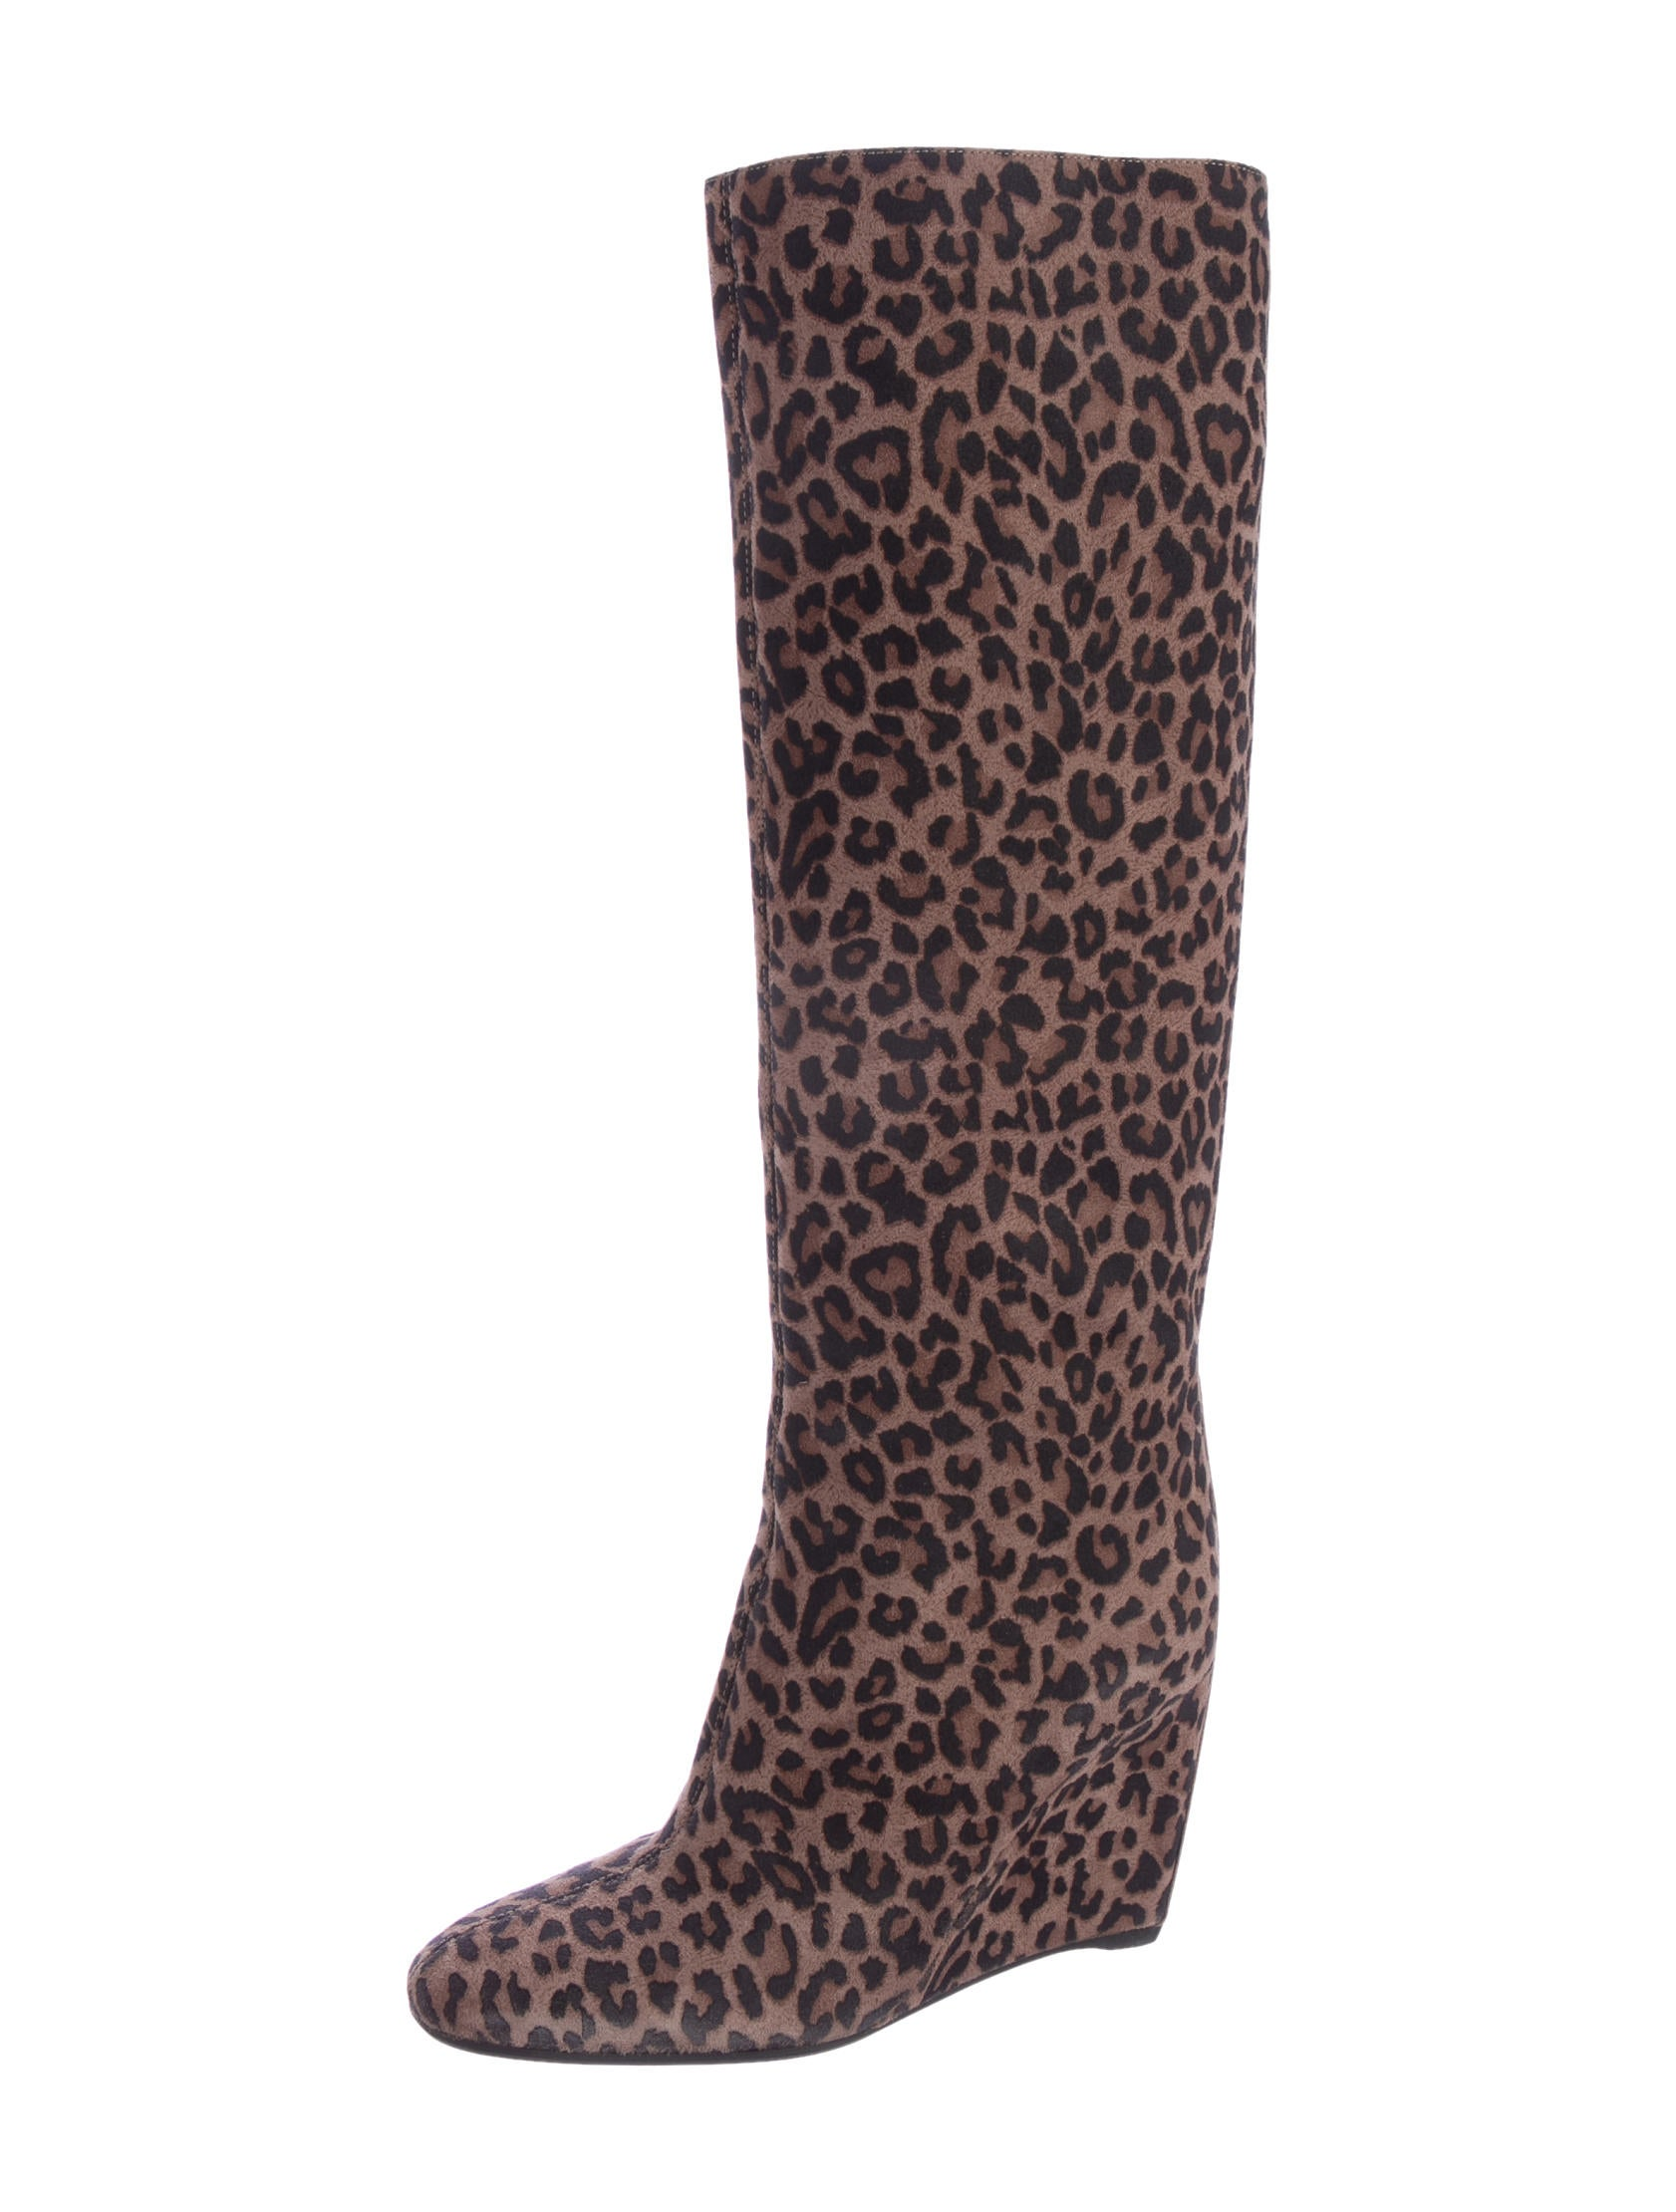 sergio leopard print knee high boots shoes